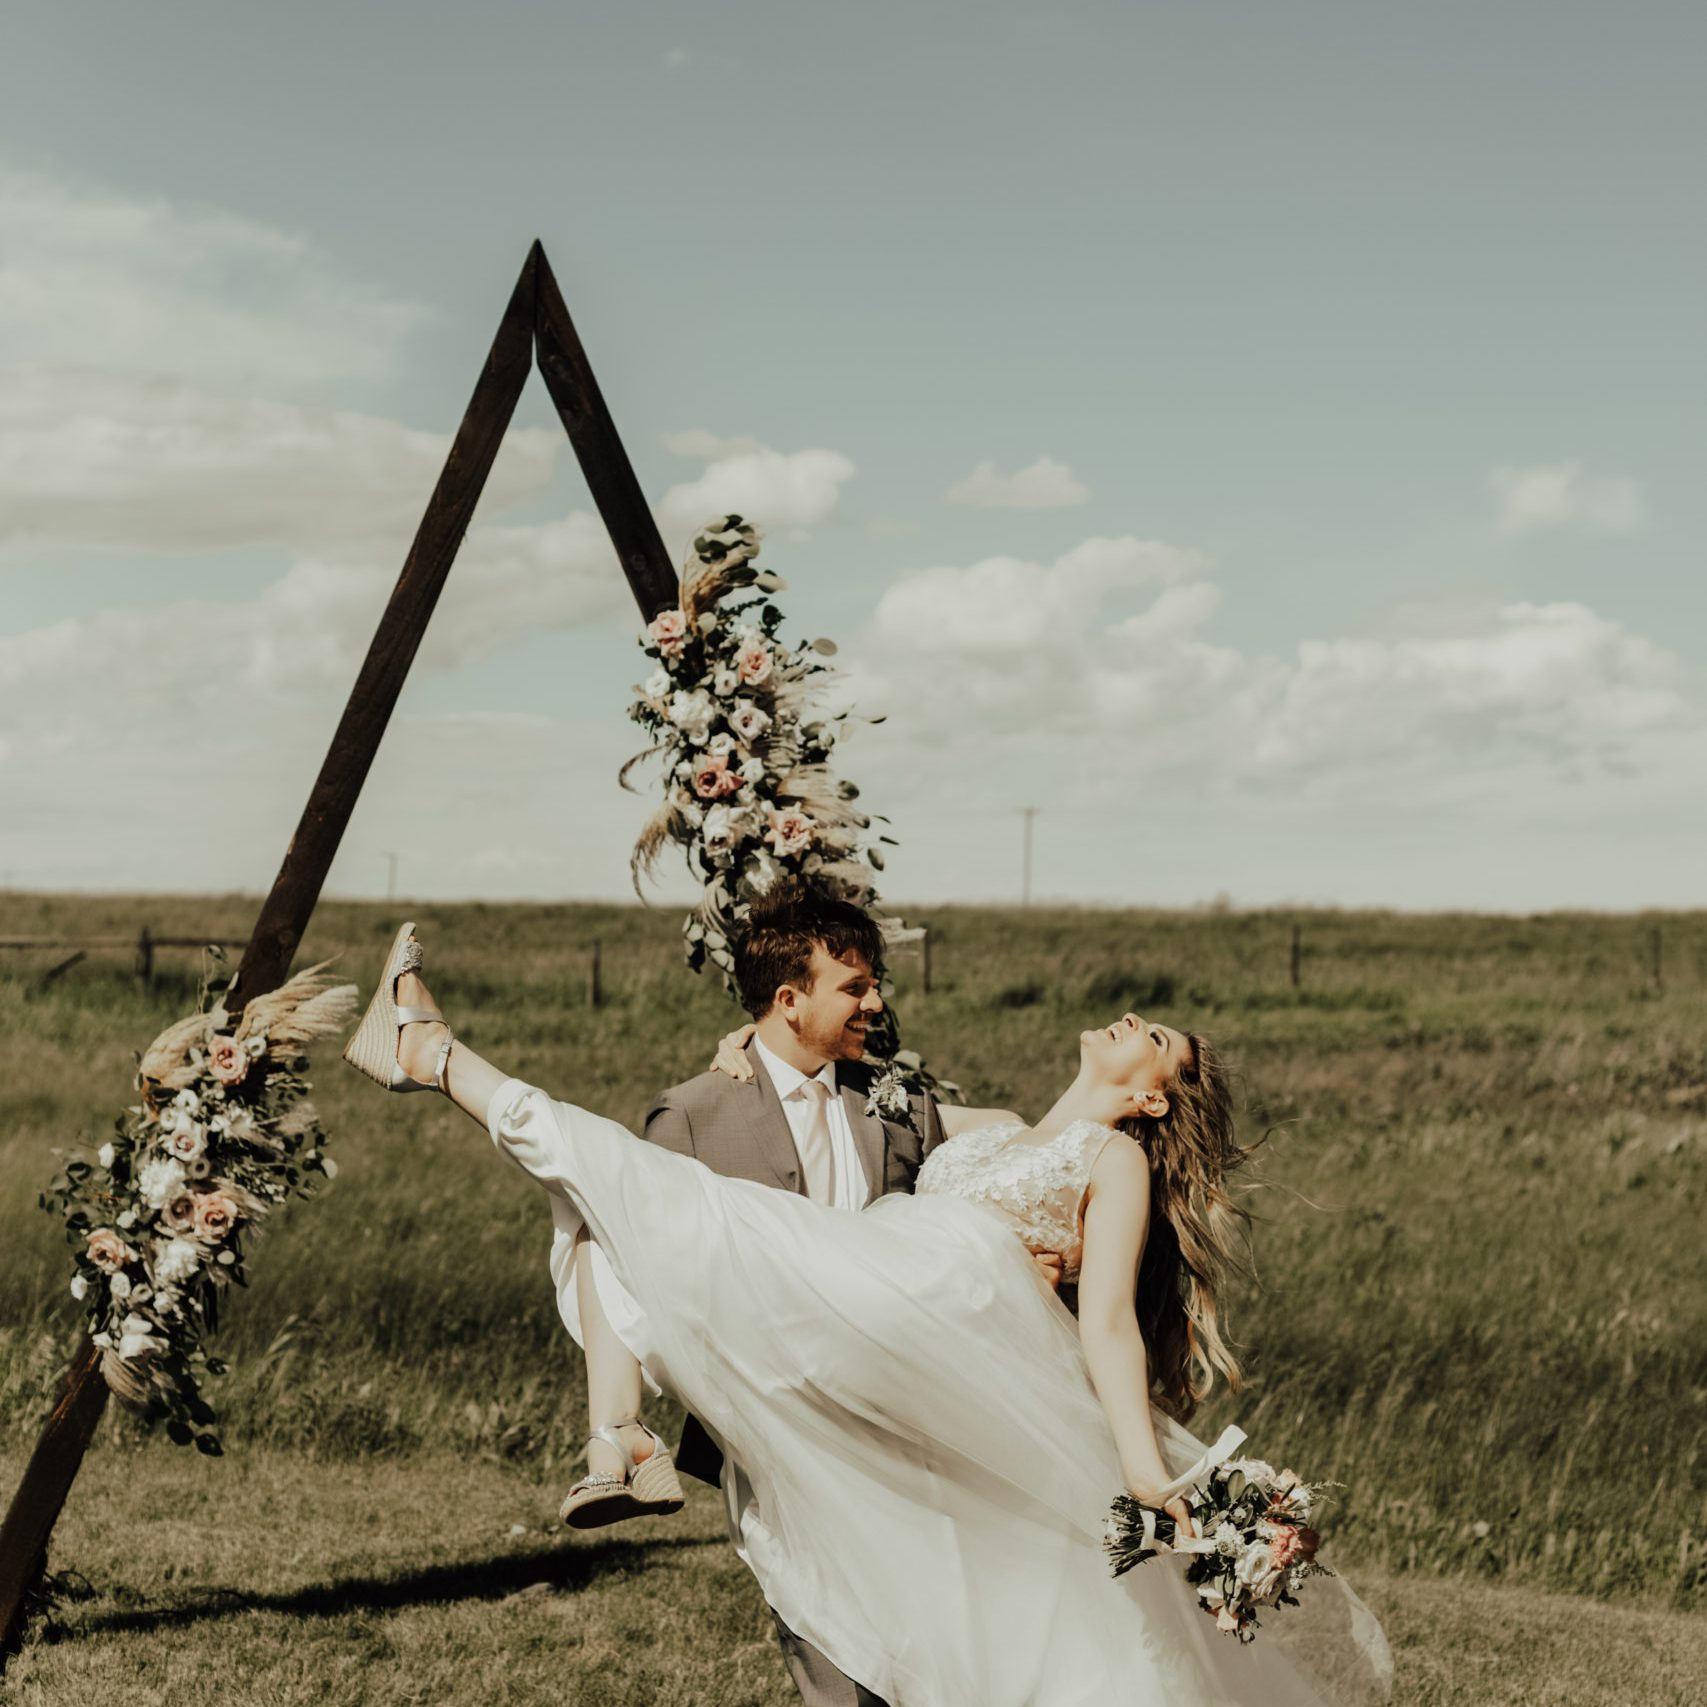 groom lifts the bride while her modern dress blows in the wind, a triangle arbor decorated with romantic flowers make the backdrop while in a prairie field. www.thegathered.ca